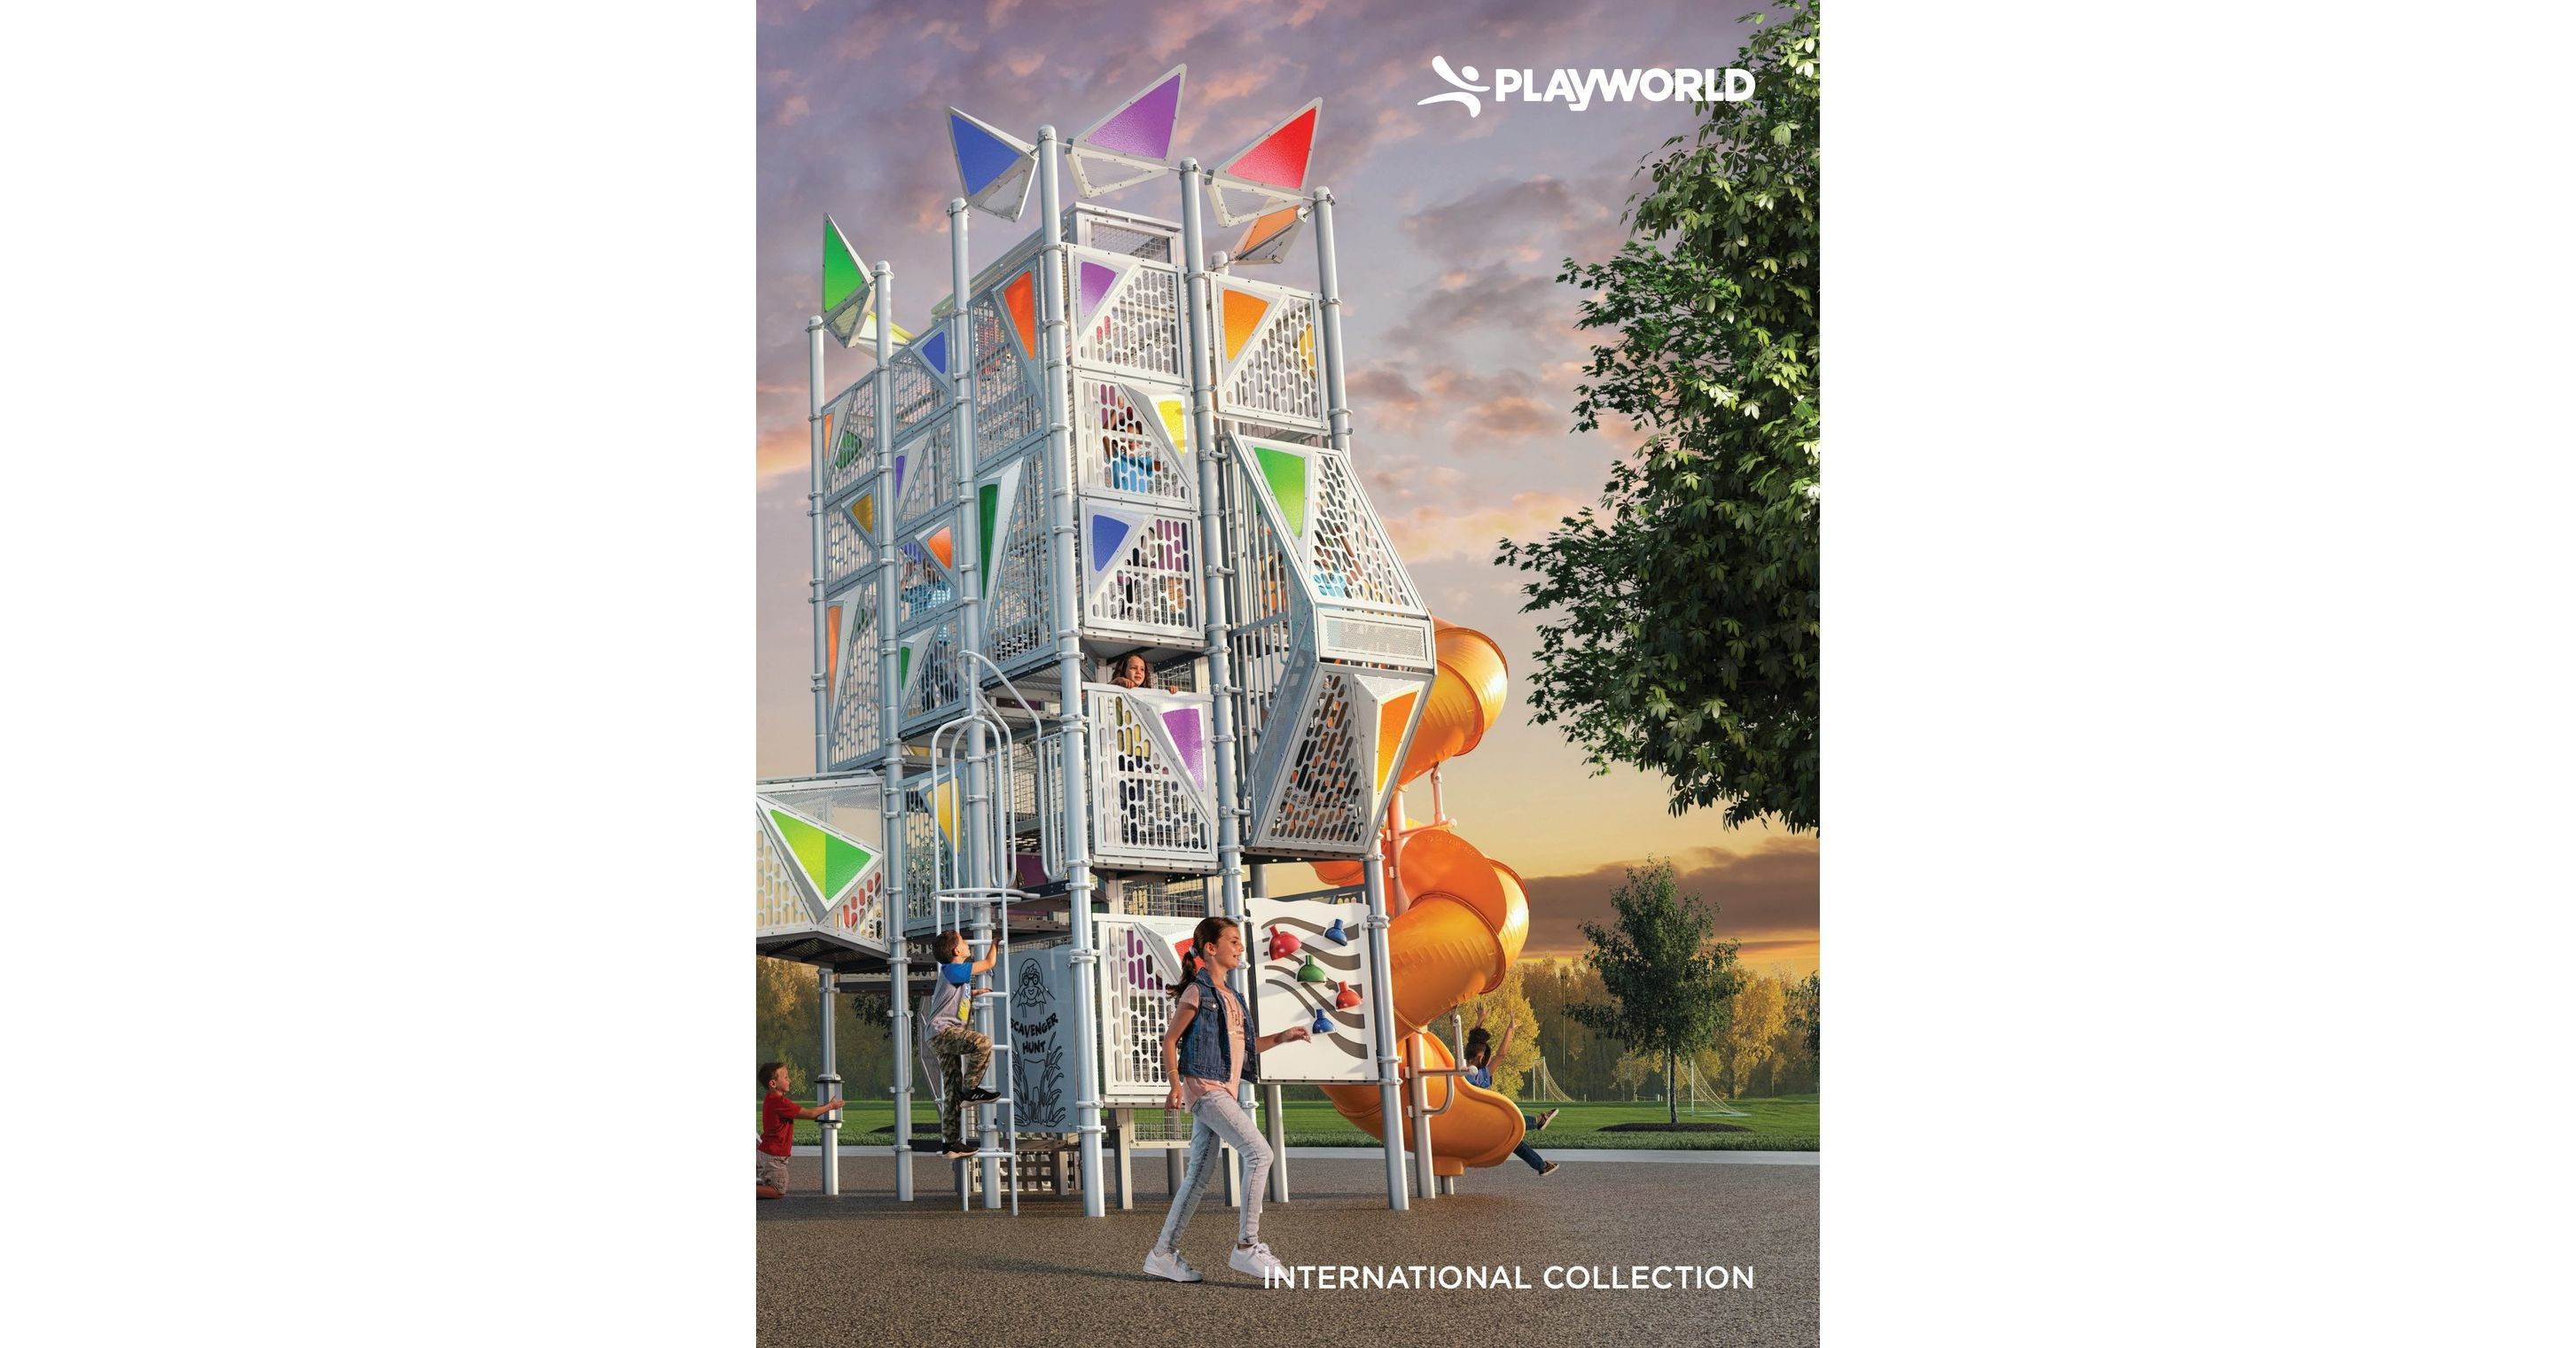 Playworld - International Collection